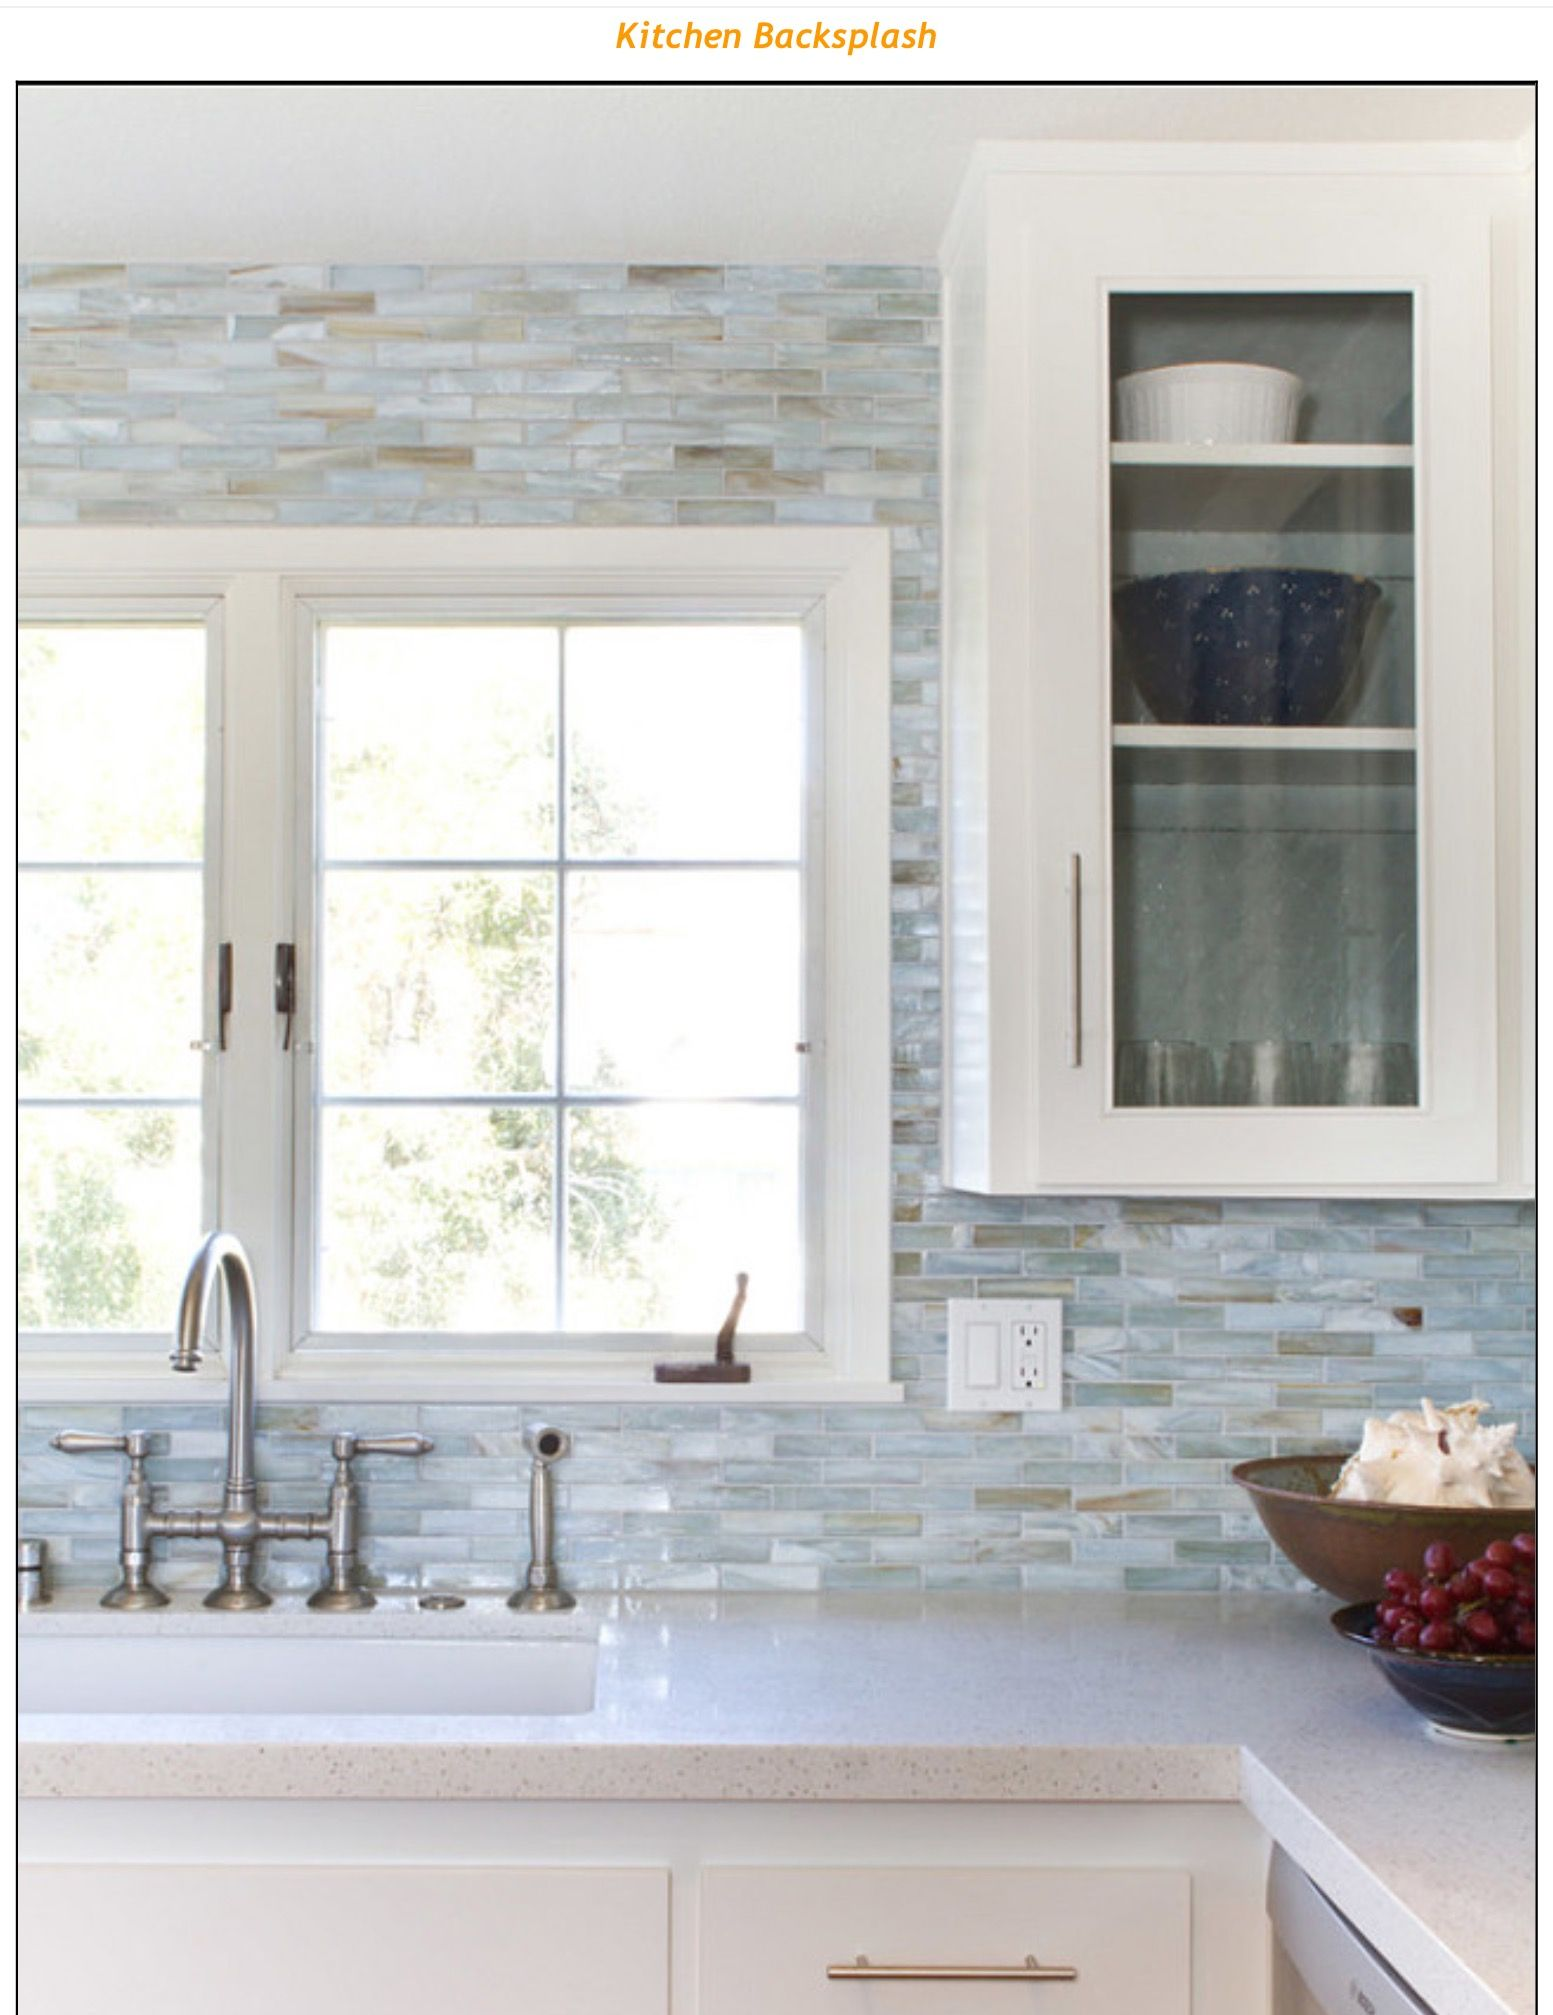 Lunada Bay Tile - Agate Glass - \